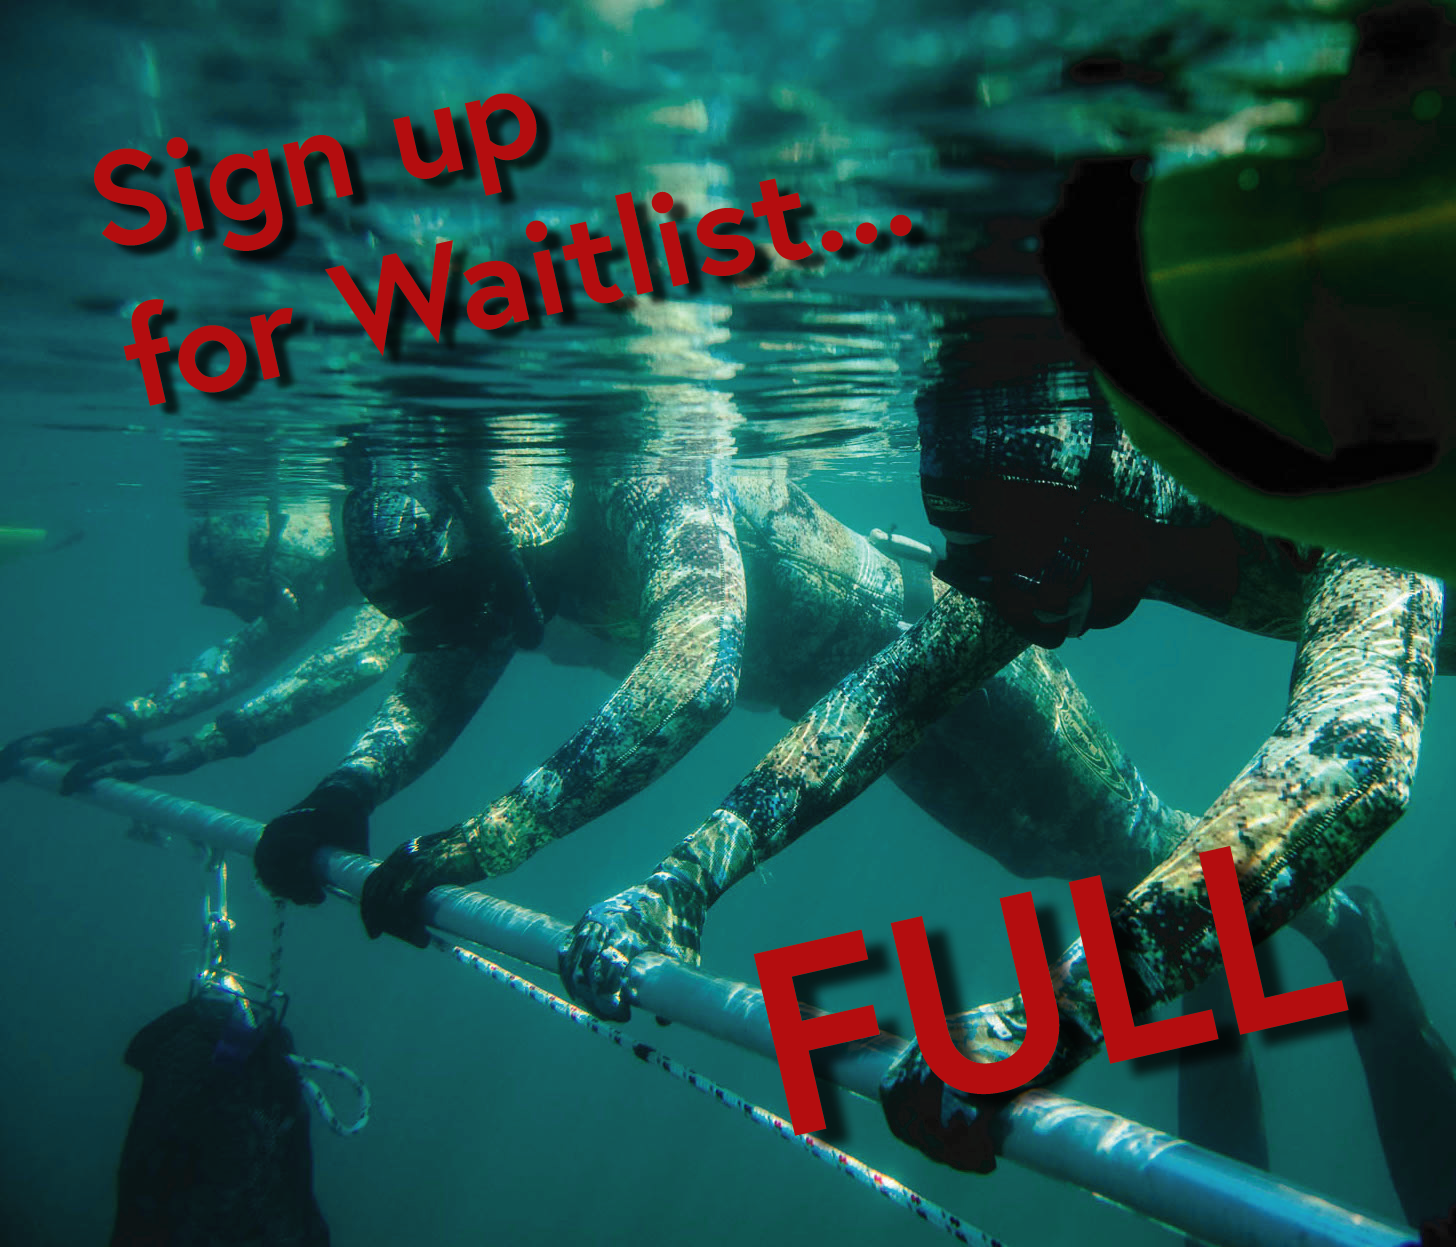 Freediver Course - AUG 9/10/11Course FullSign Up Here for Wailist